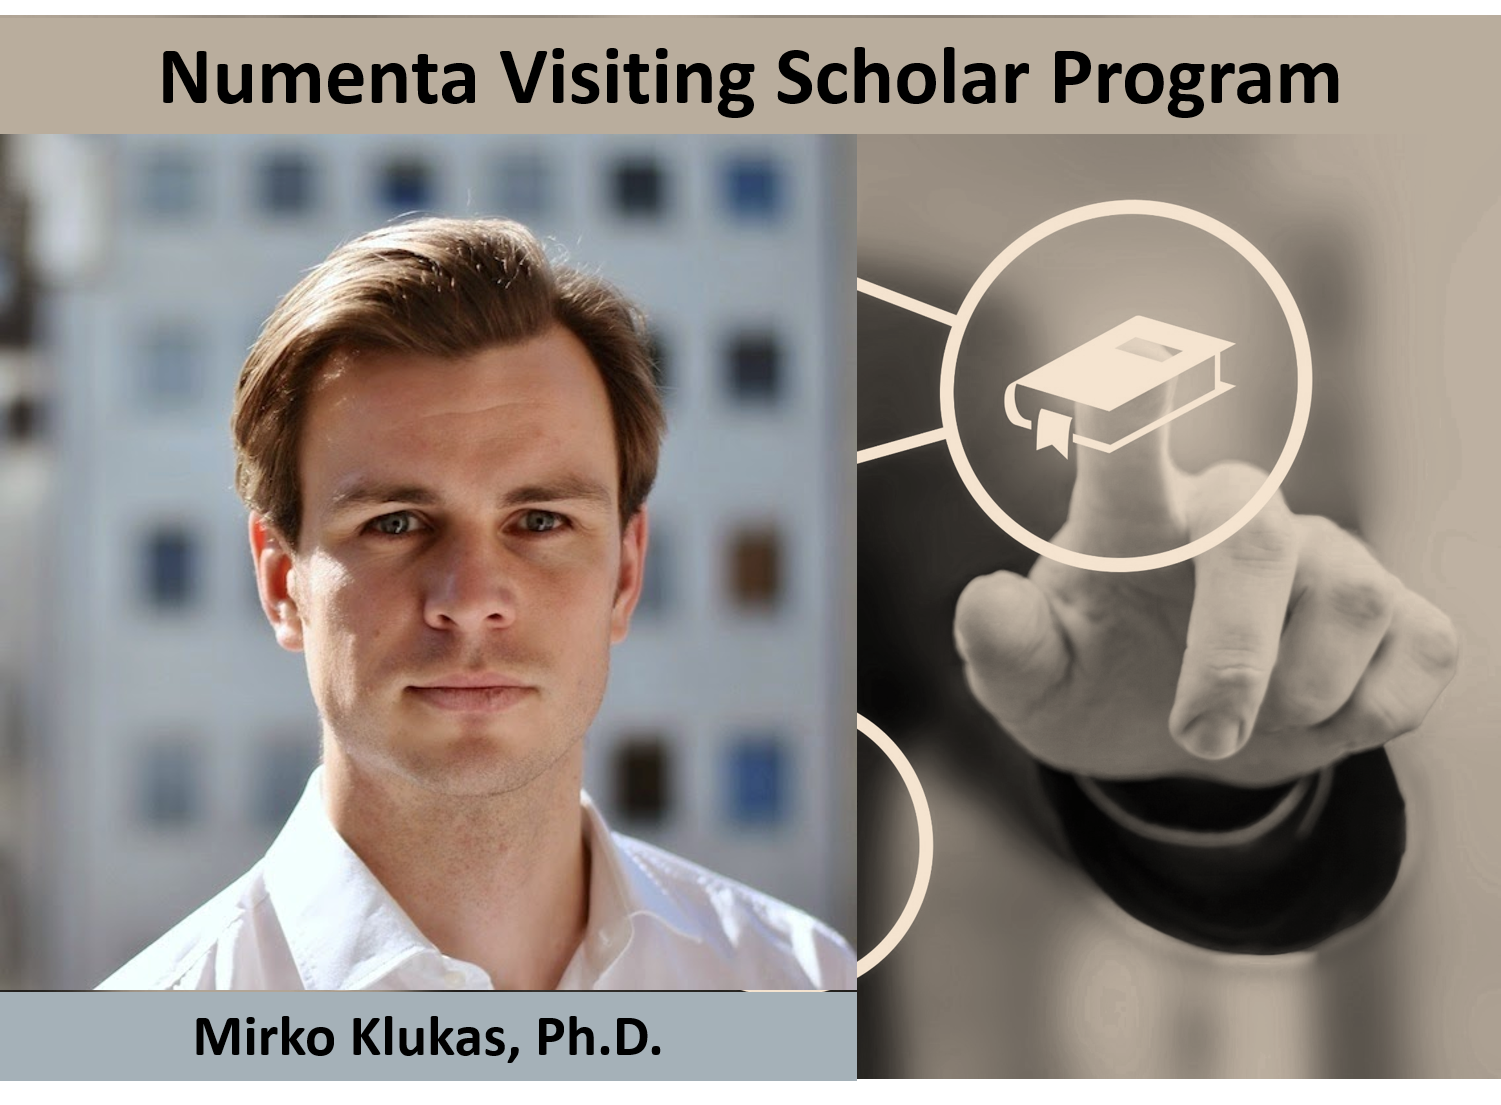 Q&A with Mirko Klukas, Numenta's First Visiting Scholar